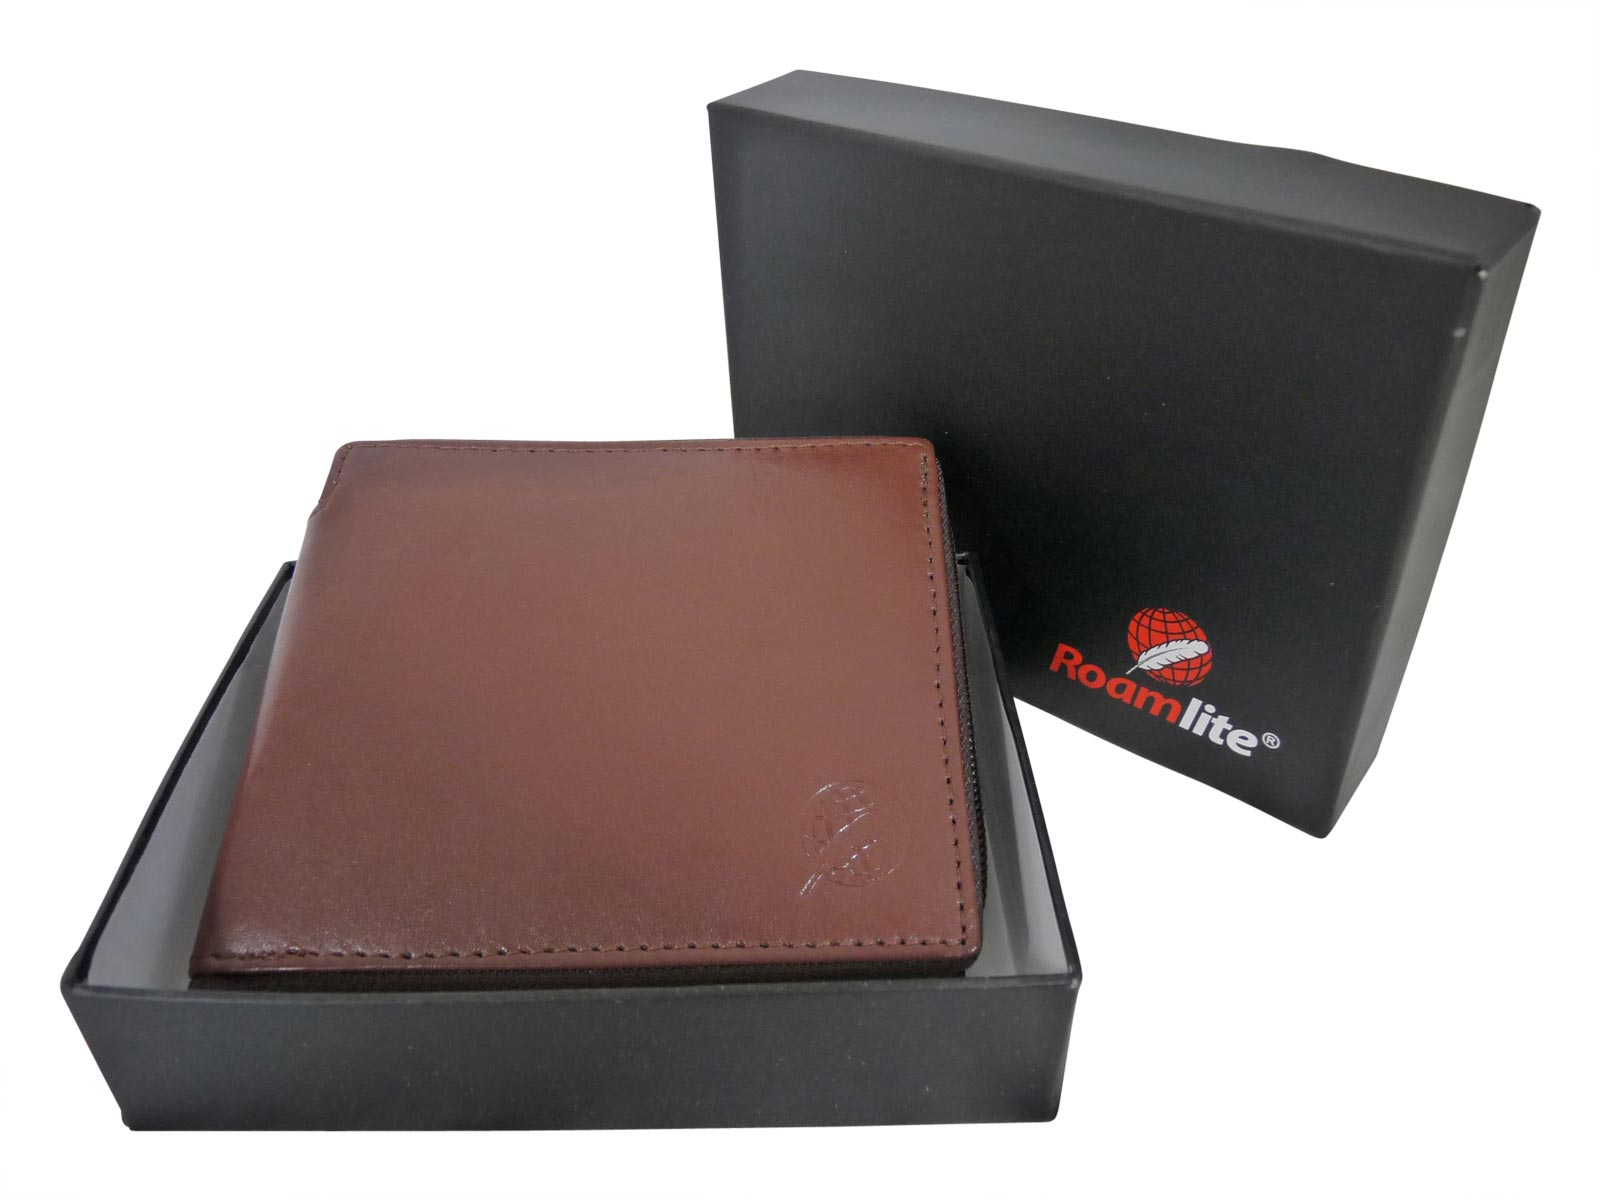 Zip around mens leather wallet RL184LB light brown gift boxed